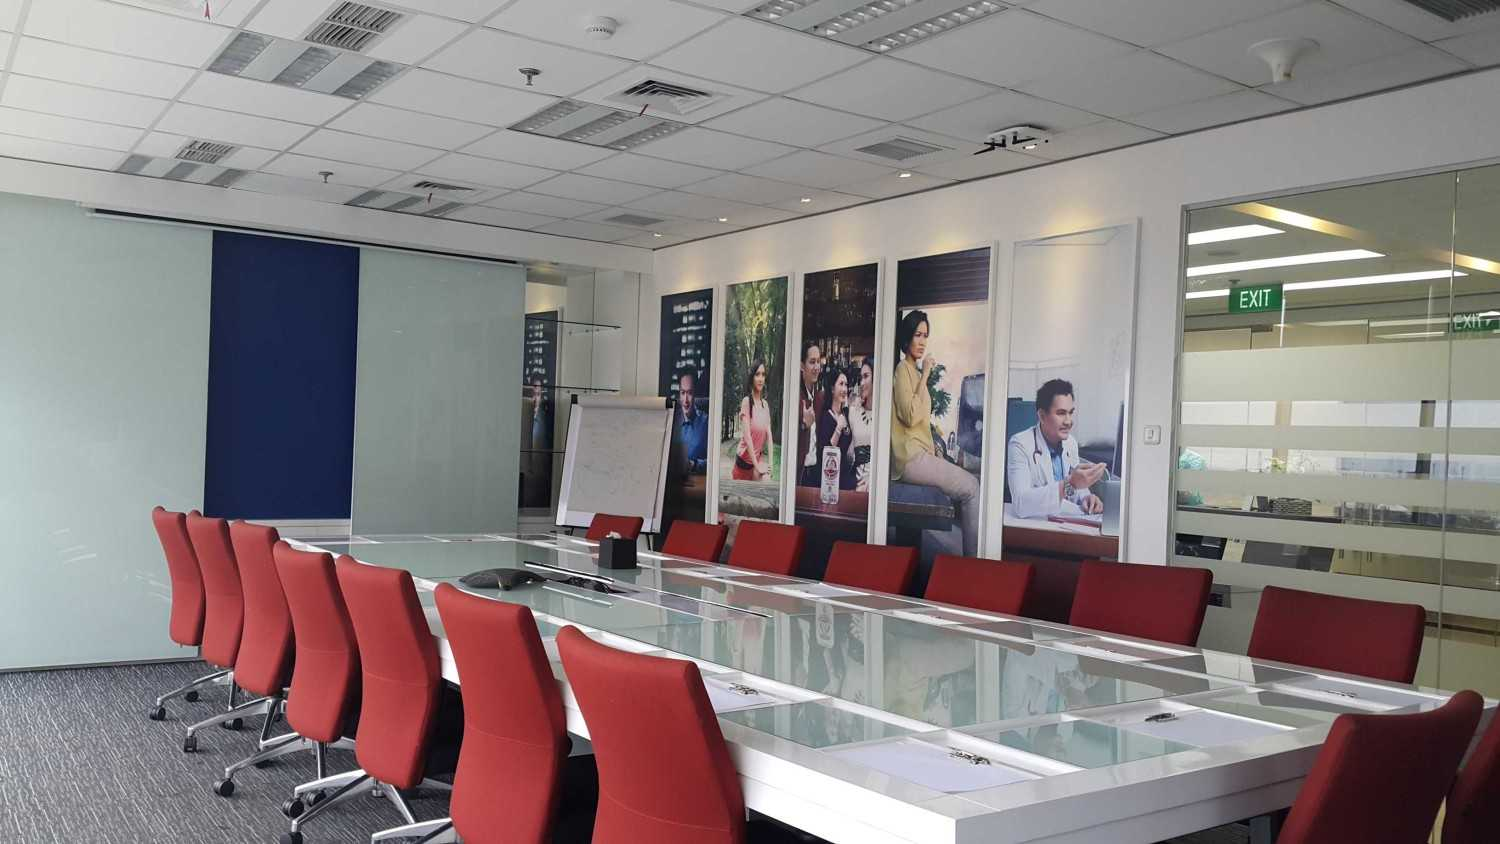 Tms Creative Nestle Meeting Room Aneka Tambang Building South Jakarta Aneka Tambang Building South Jakarta Meeting Room Modern 12390